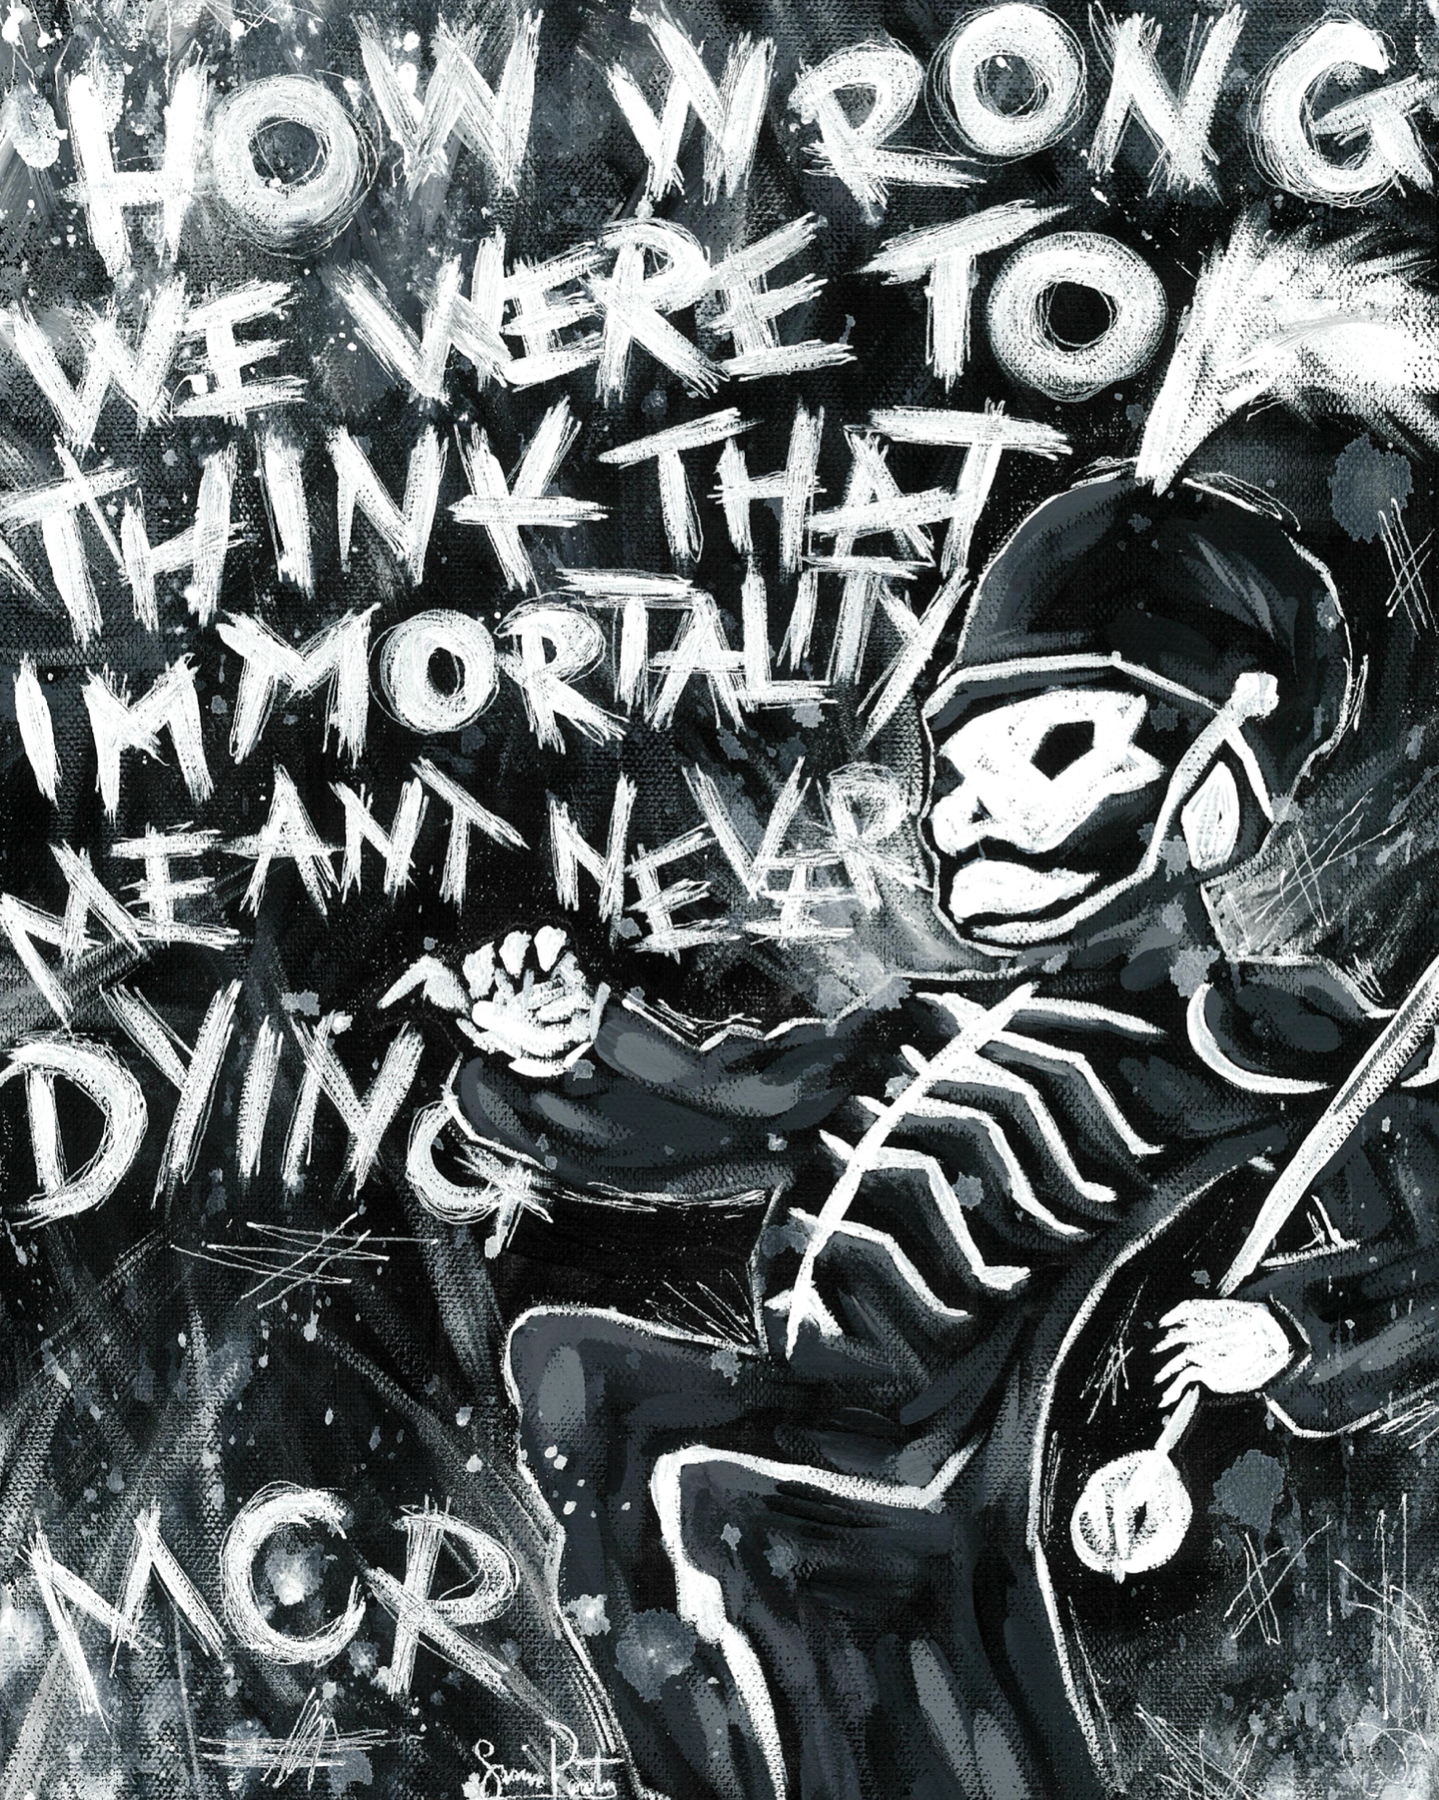 here's a painting i made bc pc decided to delete all of my collages for no reason🤩 the quote isn't even from black parade but wtv it's one of my favorite mcr lines so i used it anyway👍 comments!